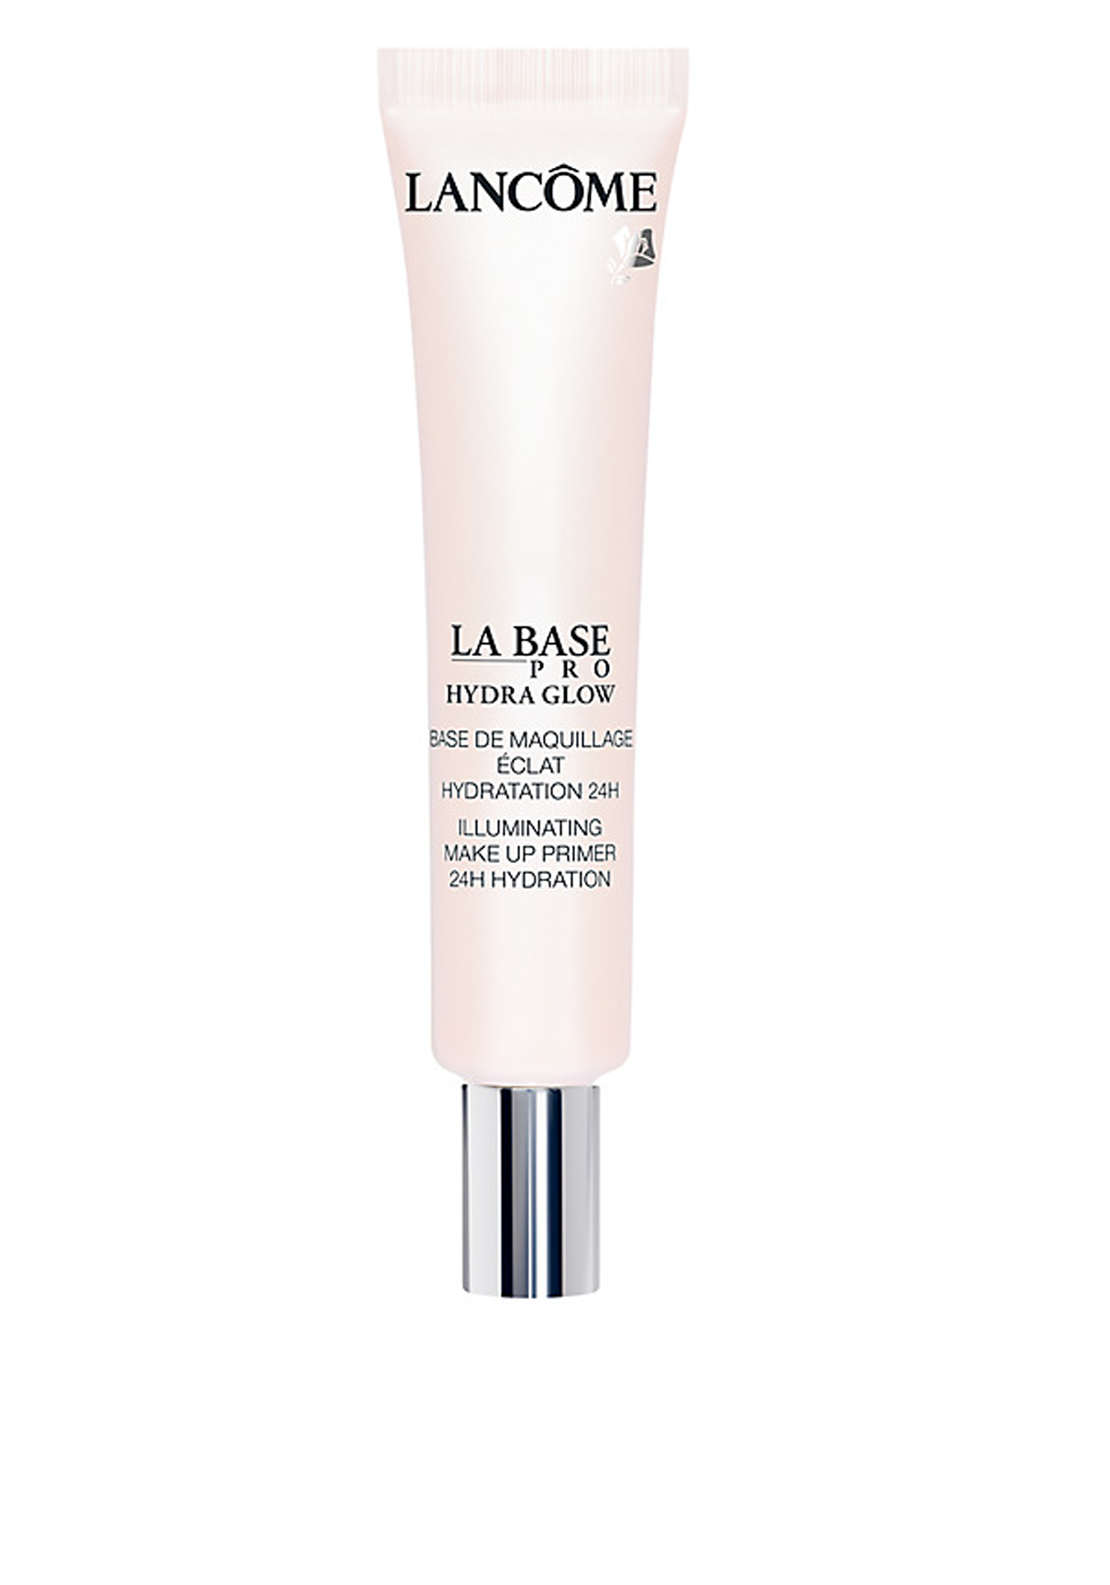 Lancome LA Base Hydra Glow Make Up Primer, 25ml